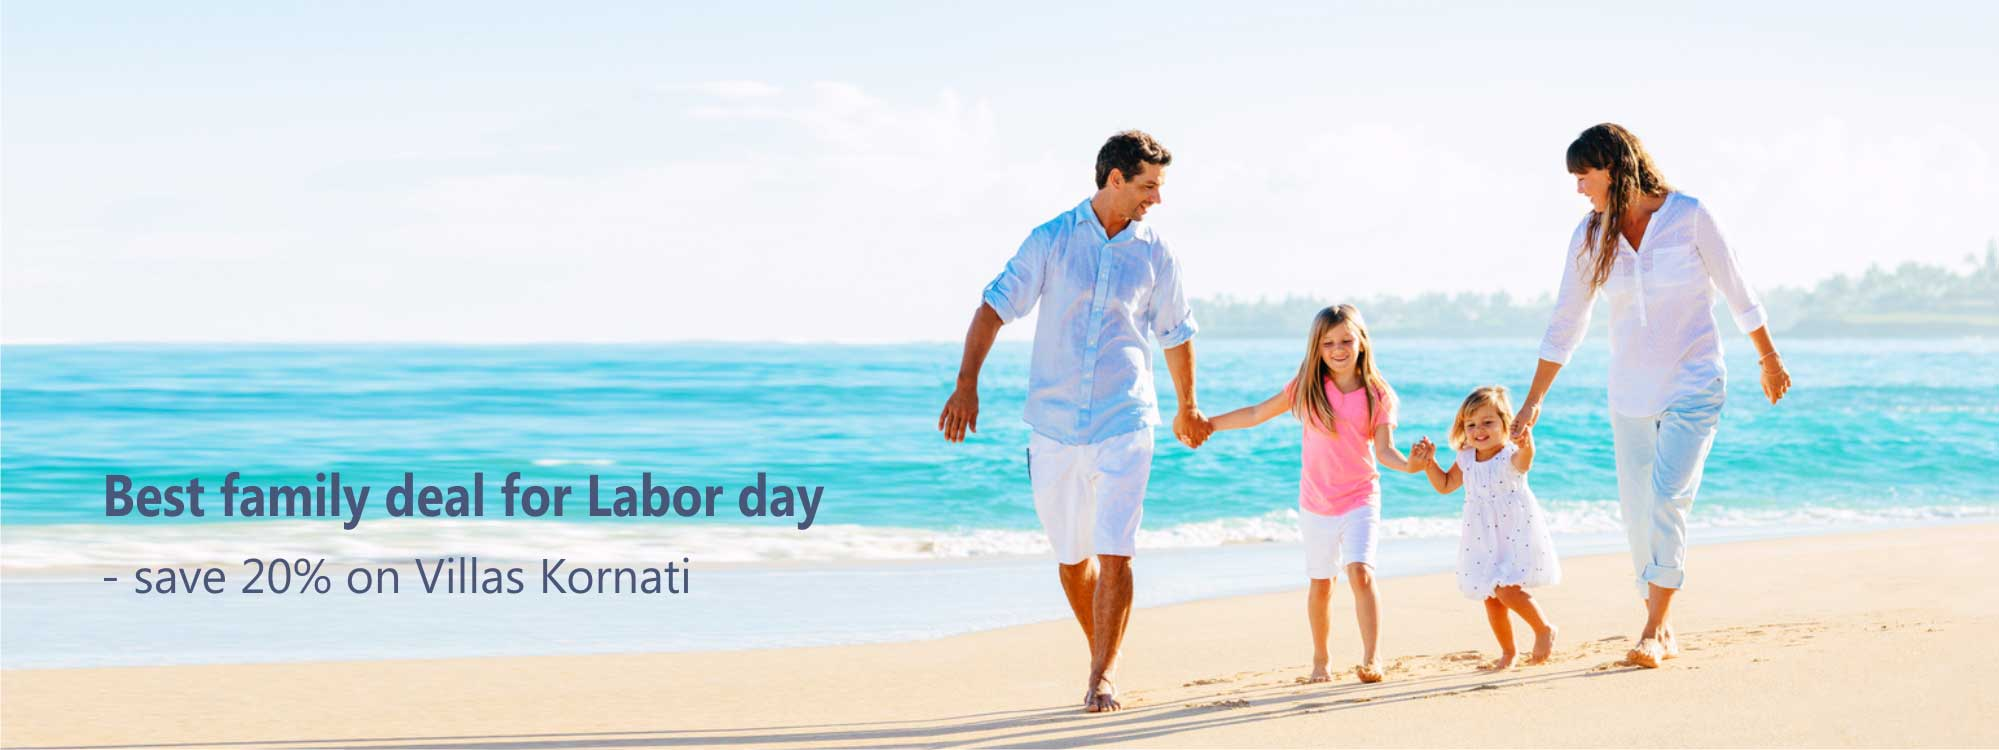 Best-family-deal-for-labor-